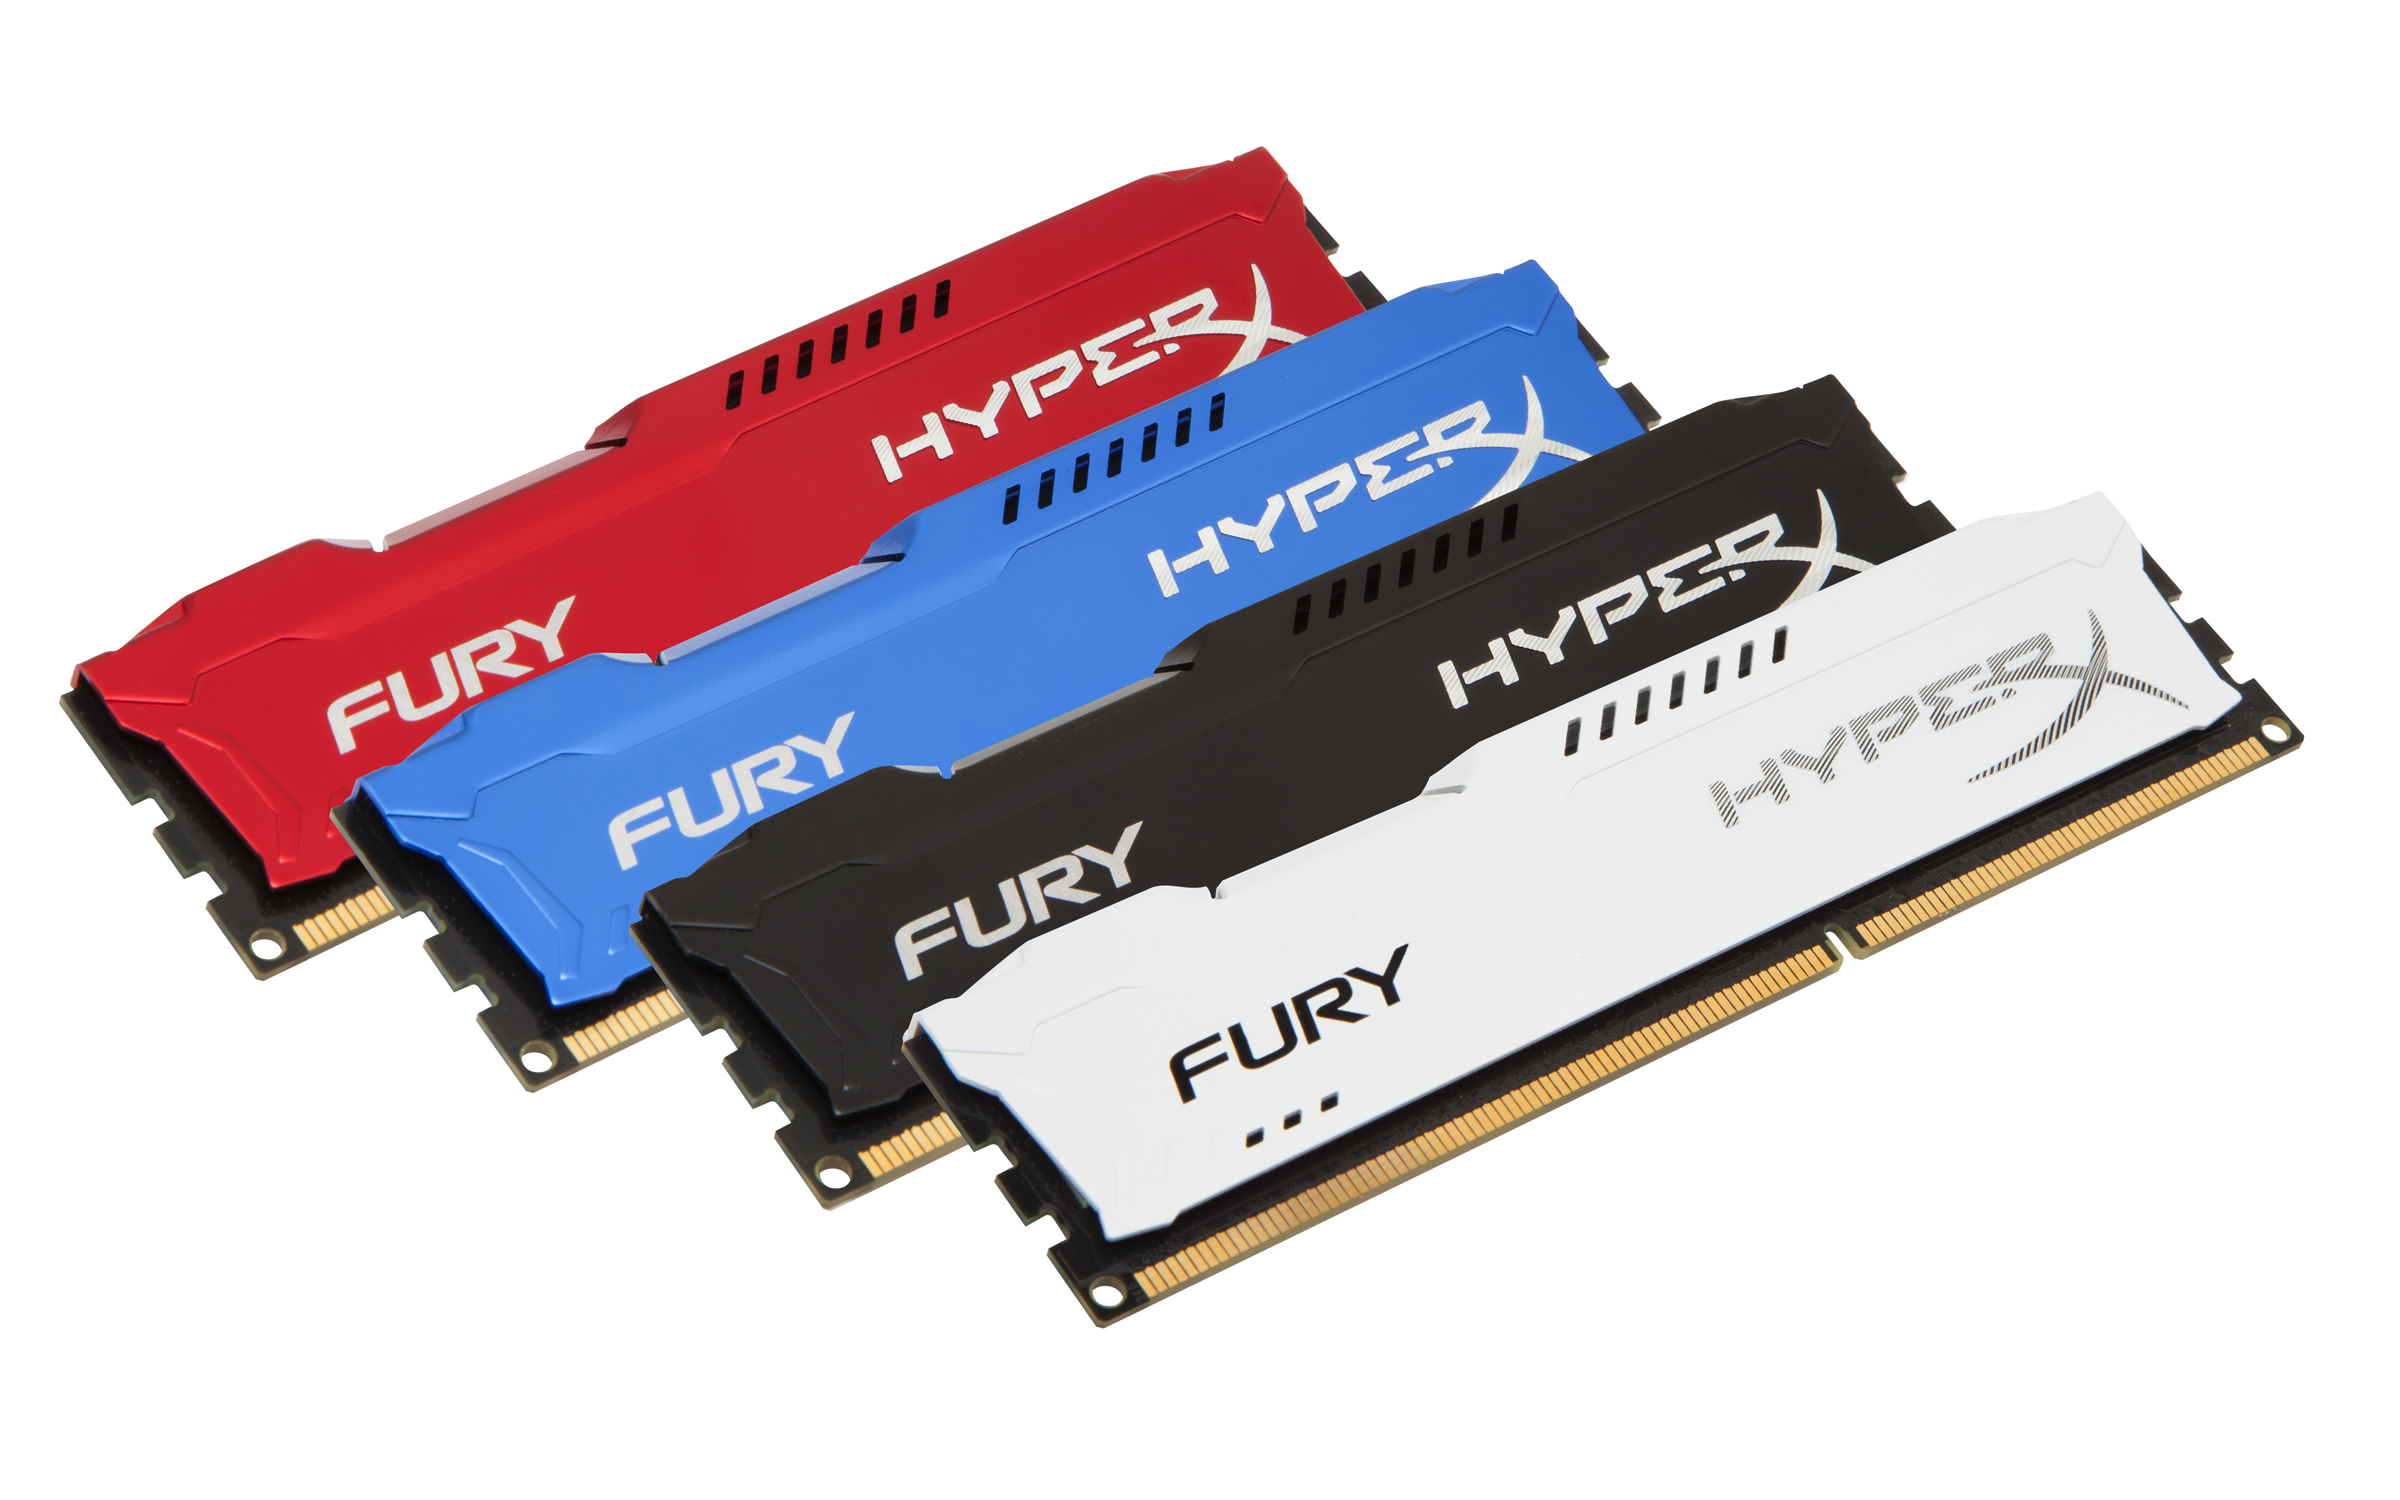 HyperX FURY memory ALL_HyperX_Fury_DIMM_group_hr_19_03_2014 23_19